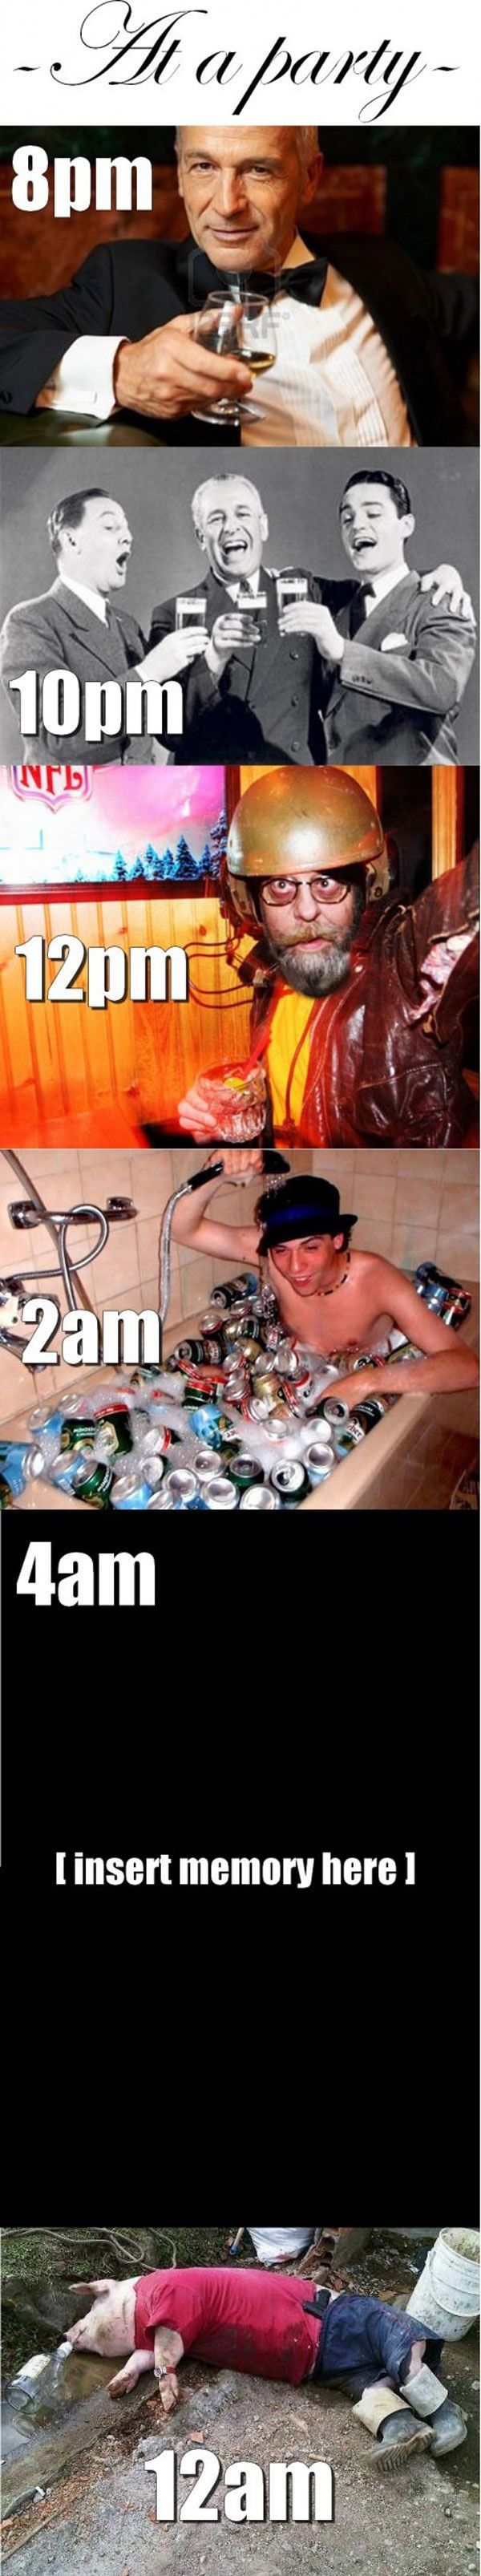 That's How Parties Usually Go